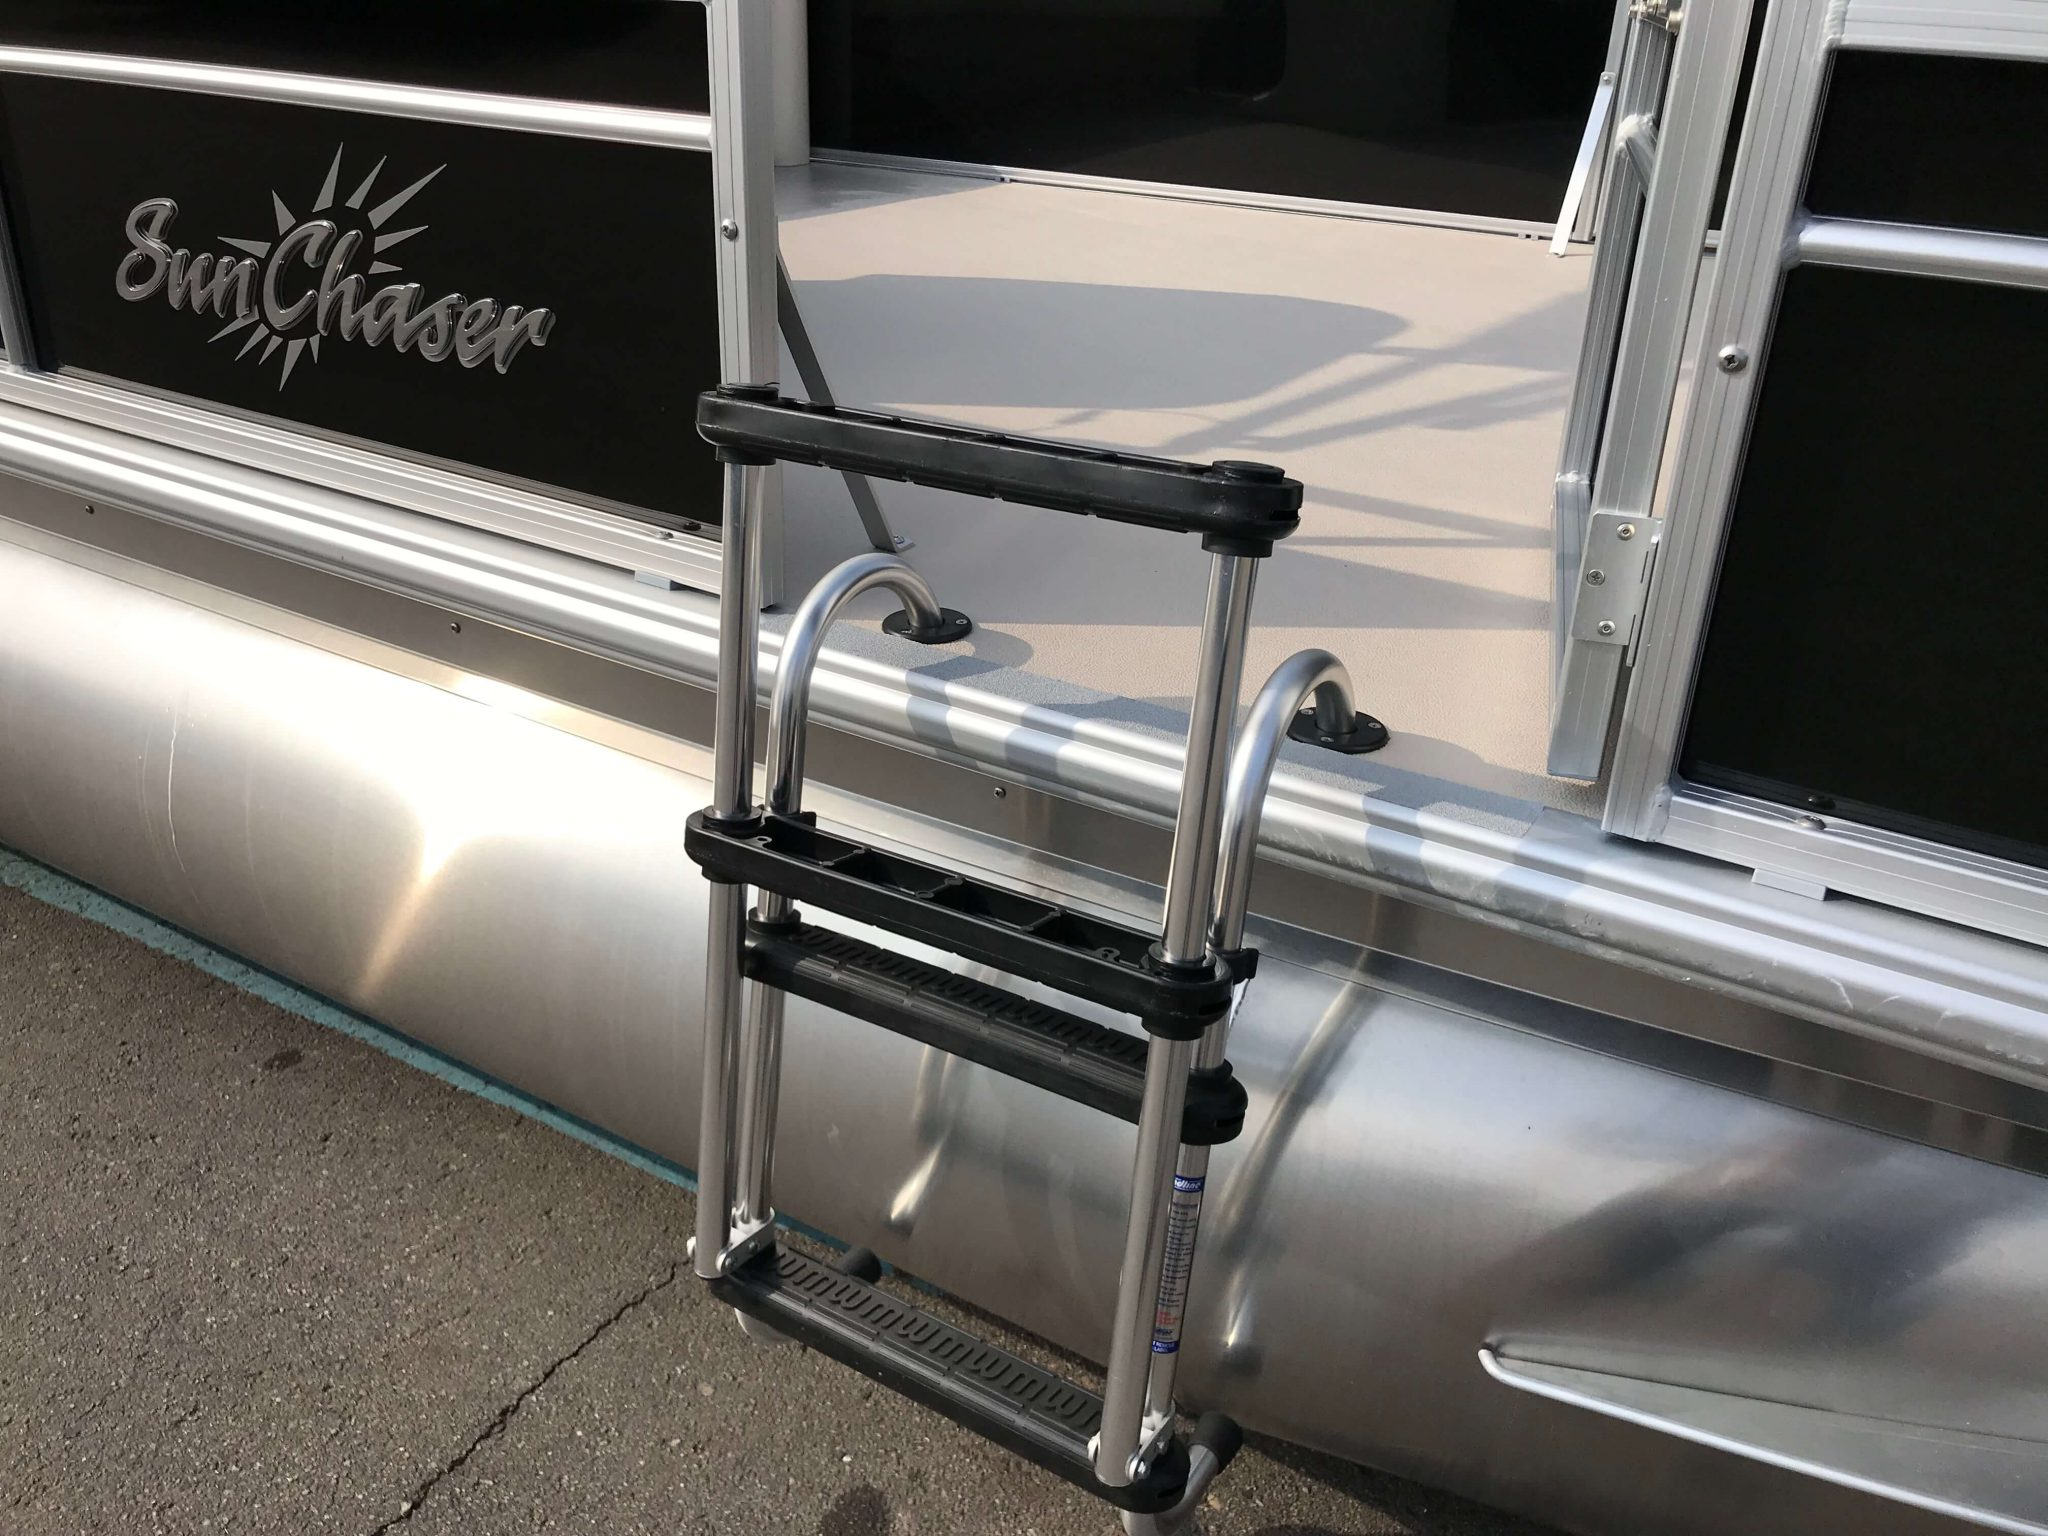 2019 SunChaser Oasis 816 Cruise Removable Gate Ladder